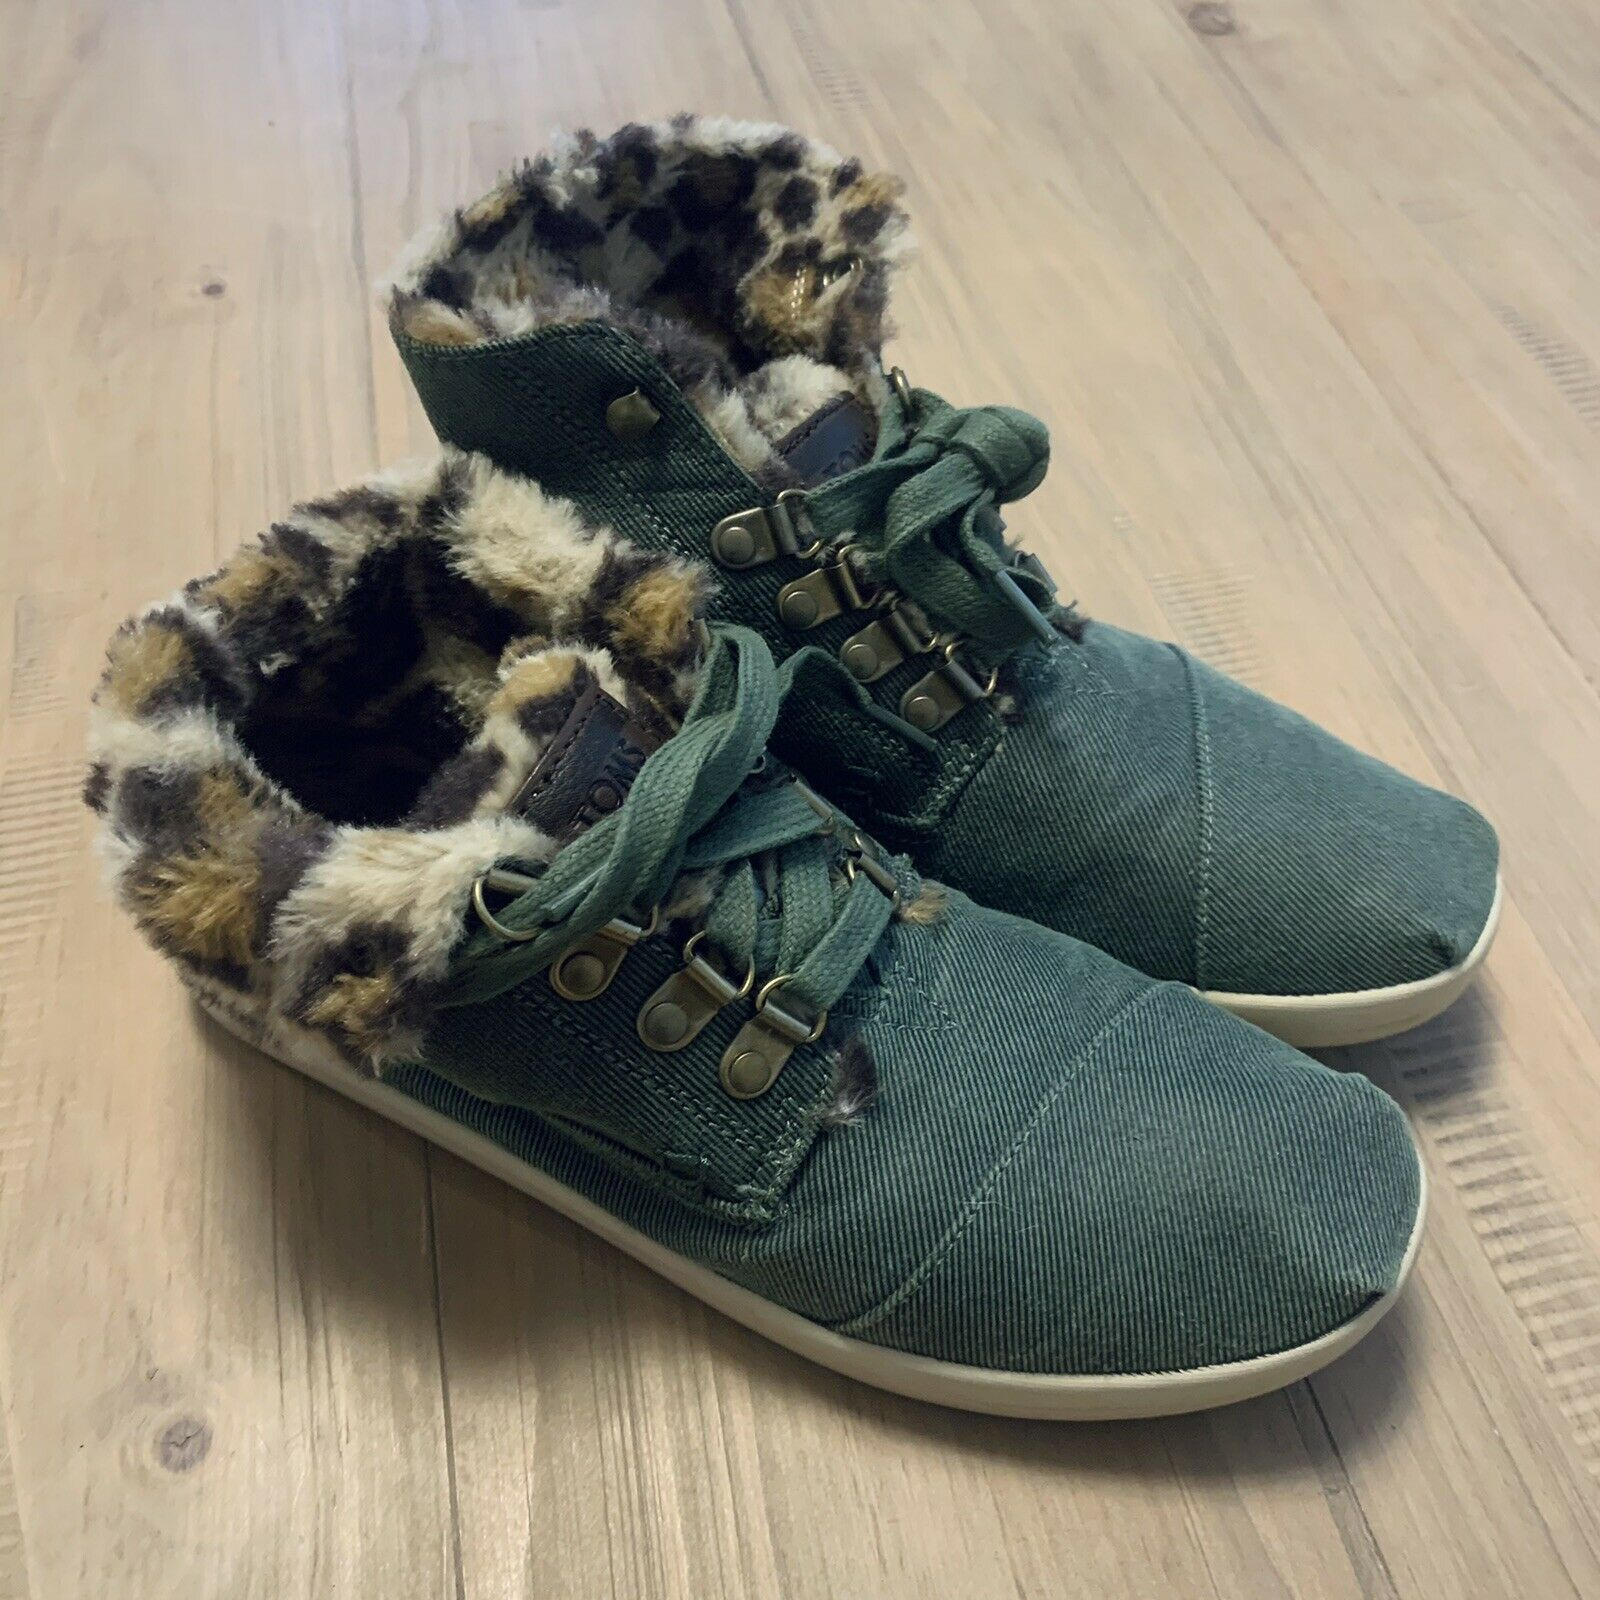 Toms Highland Olive Green & Leopard Print Sneakers Faux Fur Lining Size 7.5